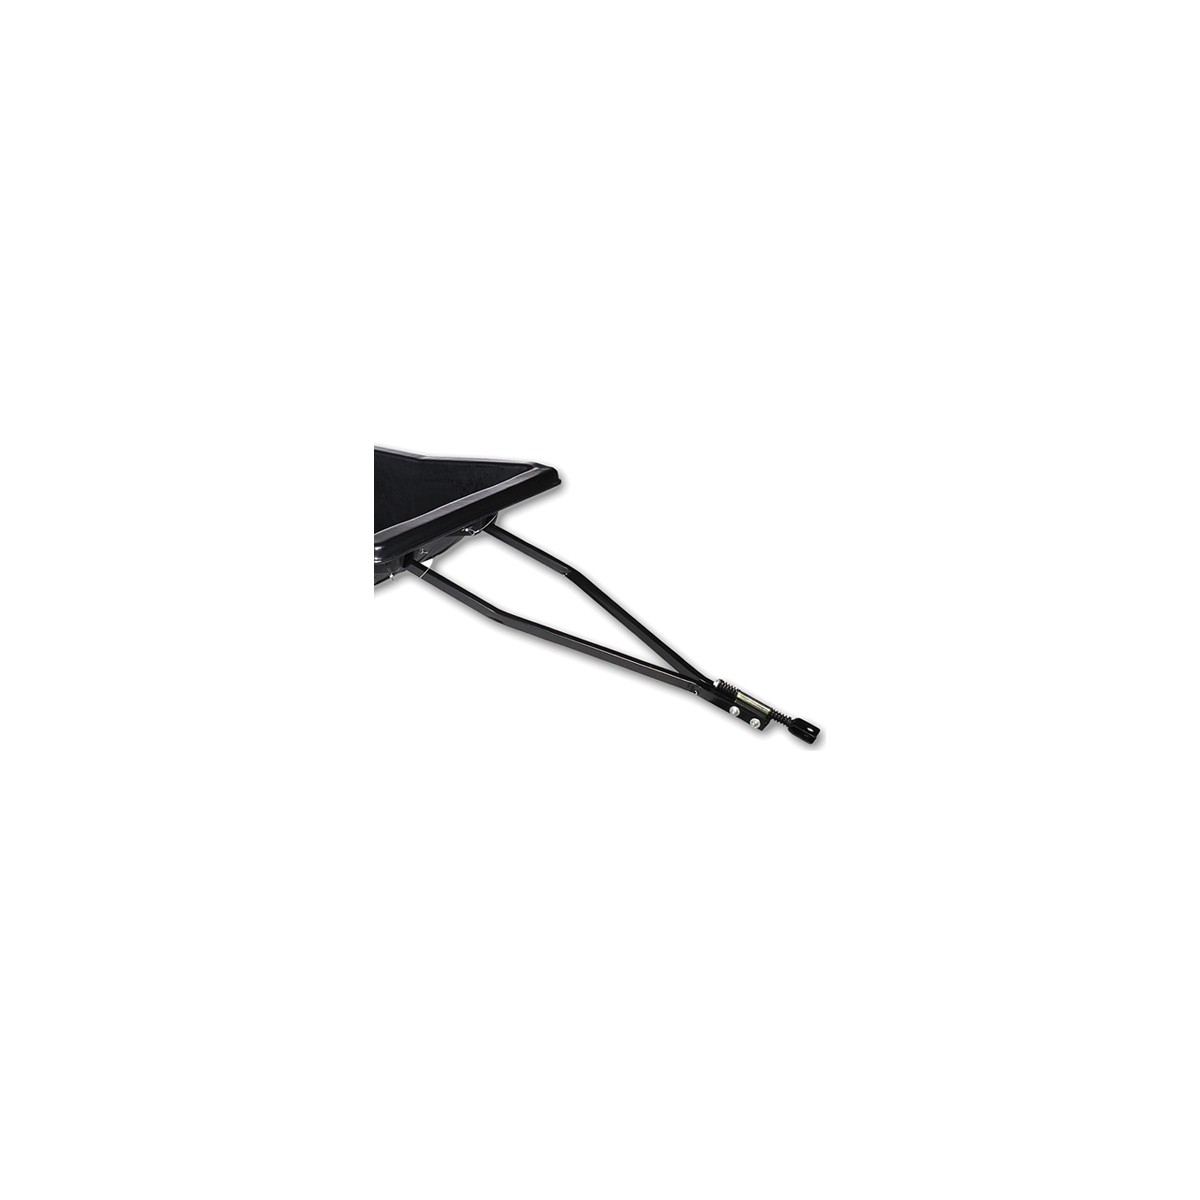 Otter Outdoors Sled Tow Hitch Small Medium Magnum